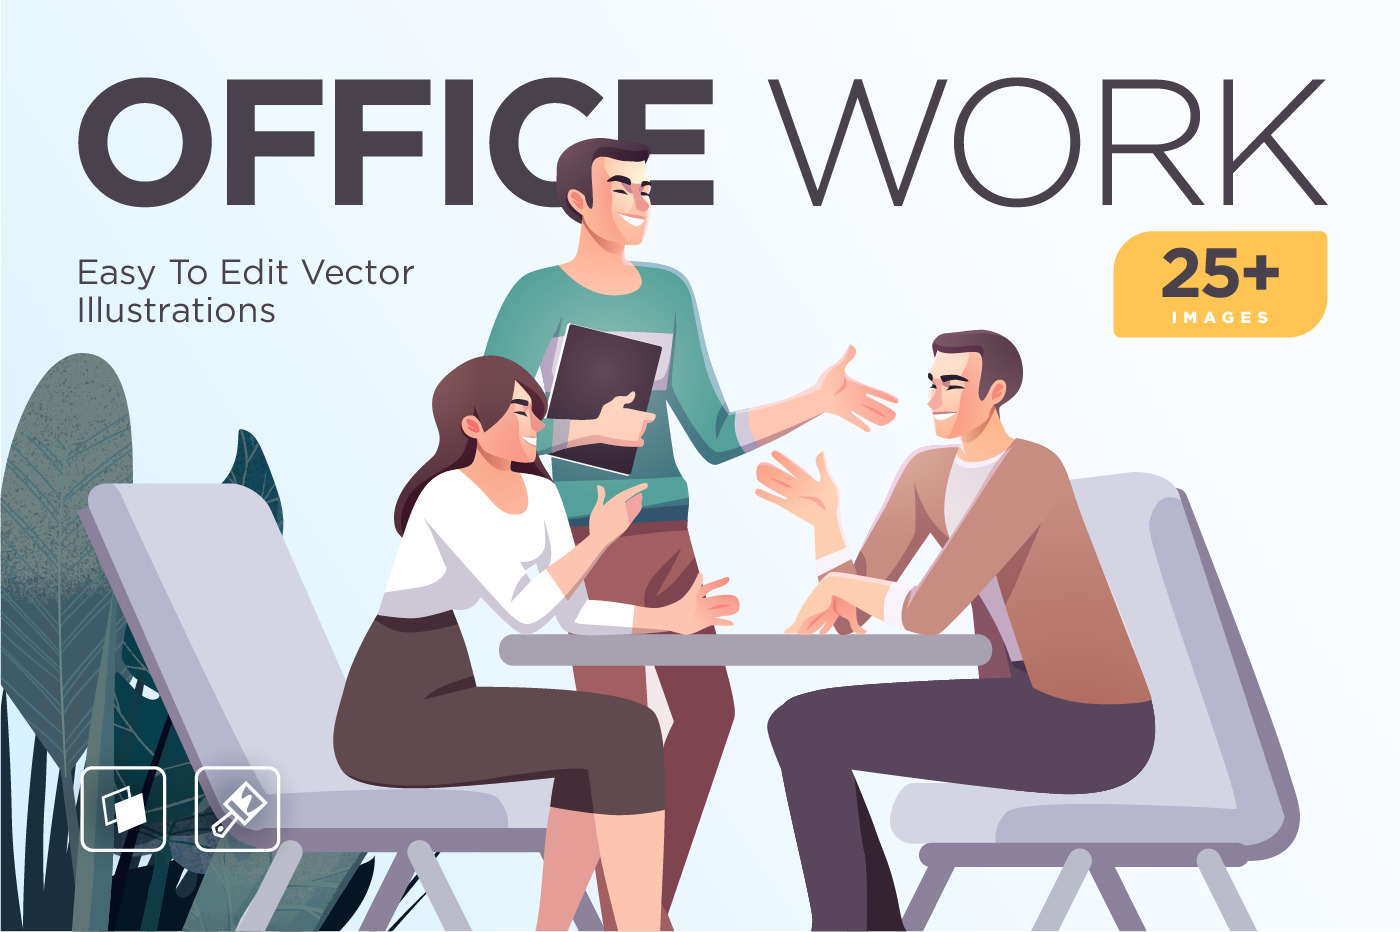 Business Concept illustrations. Scenes with people taking part in business activities